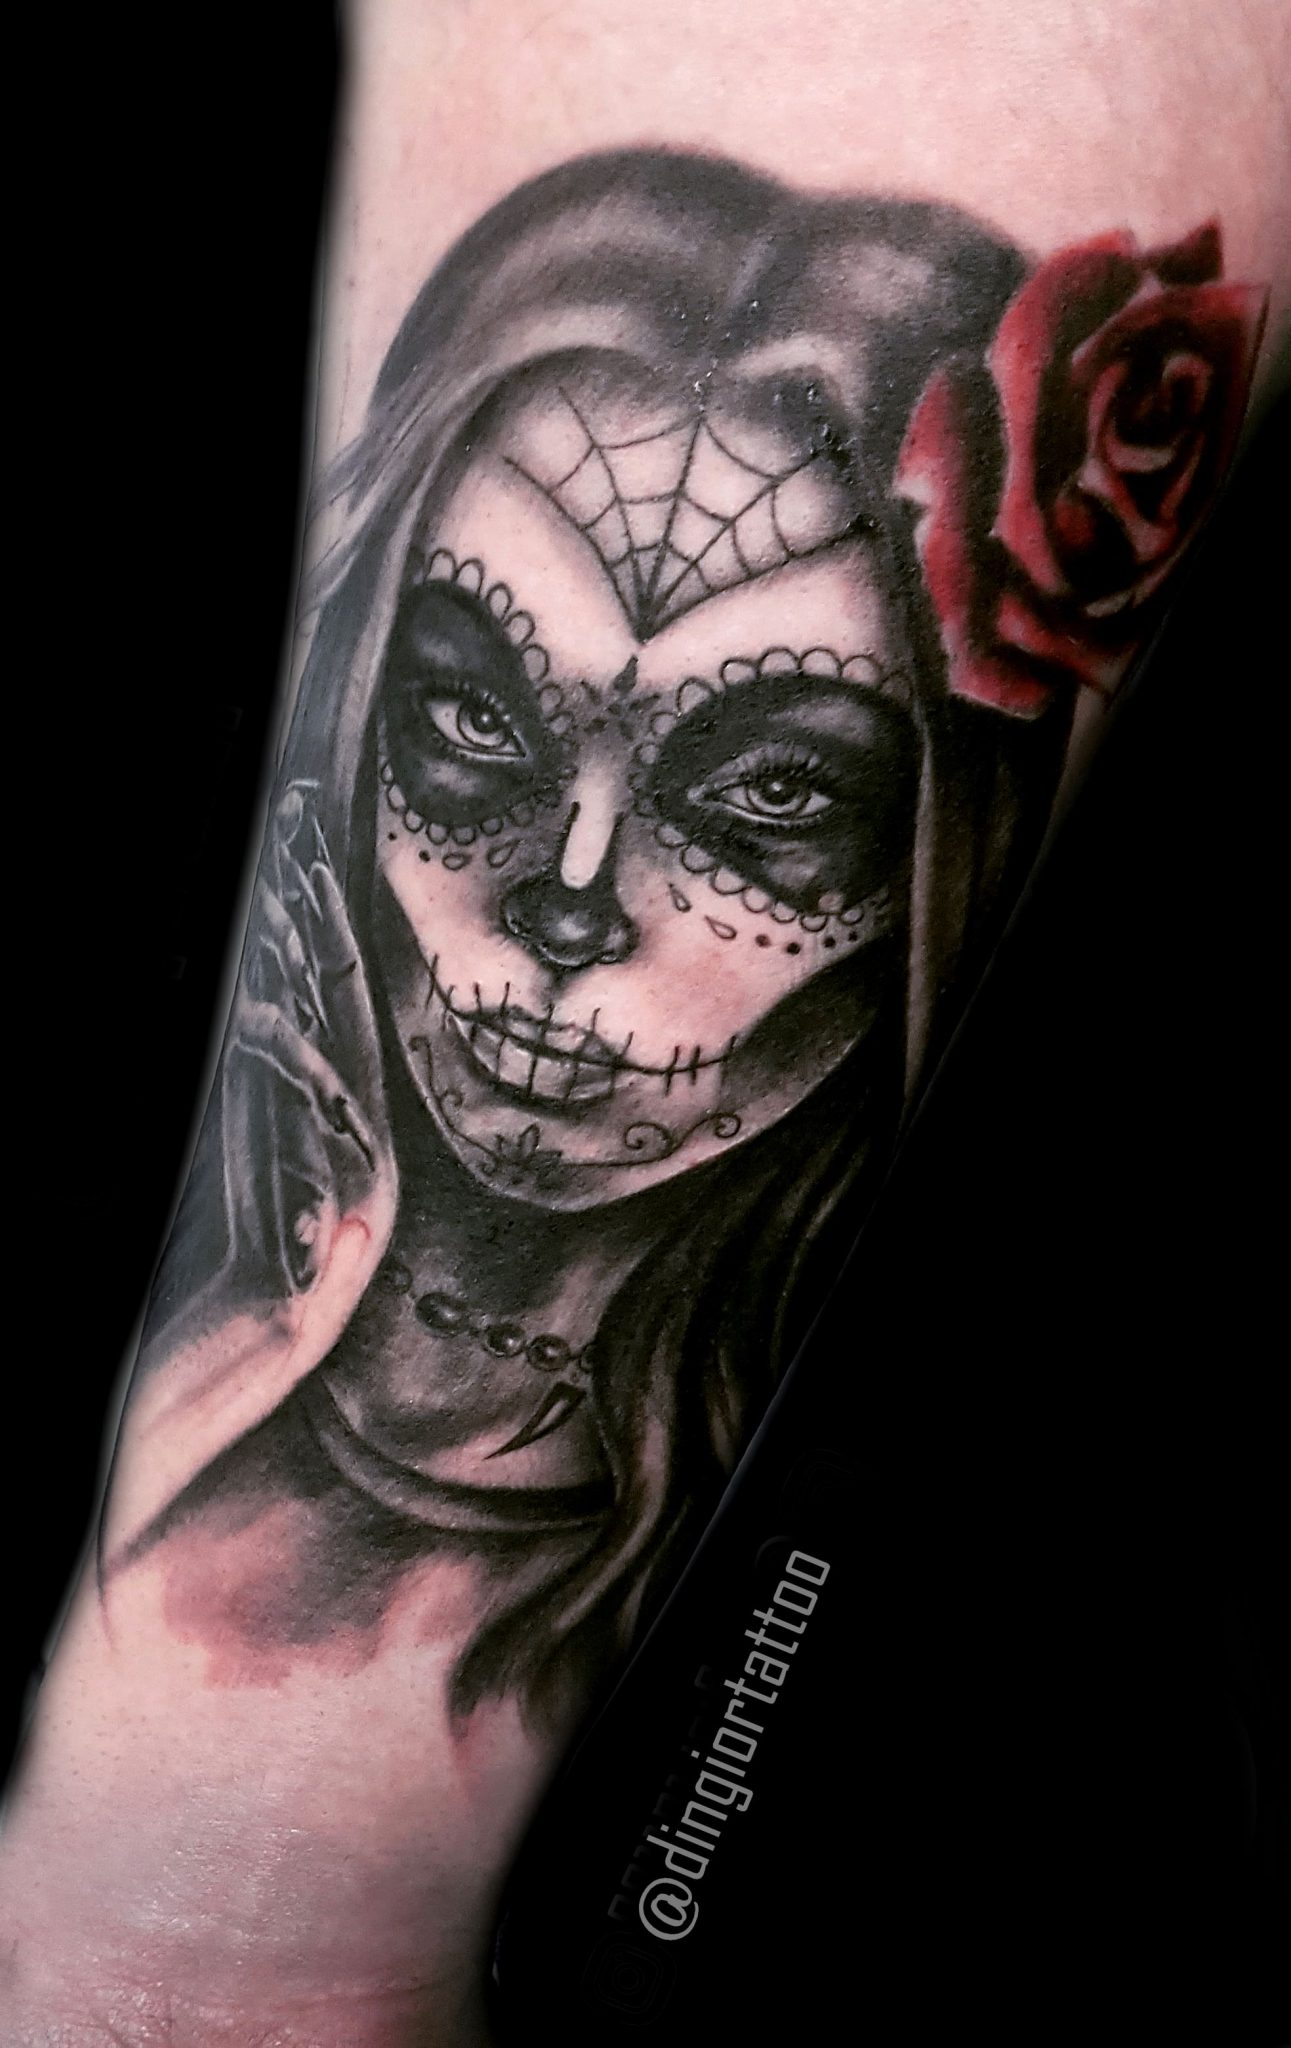 Realism or Realistic Tattoos Girl